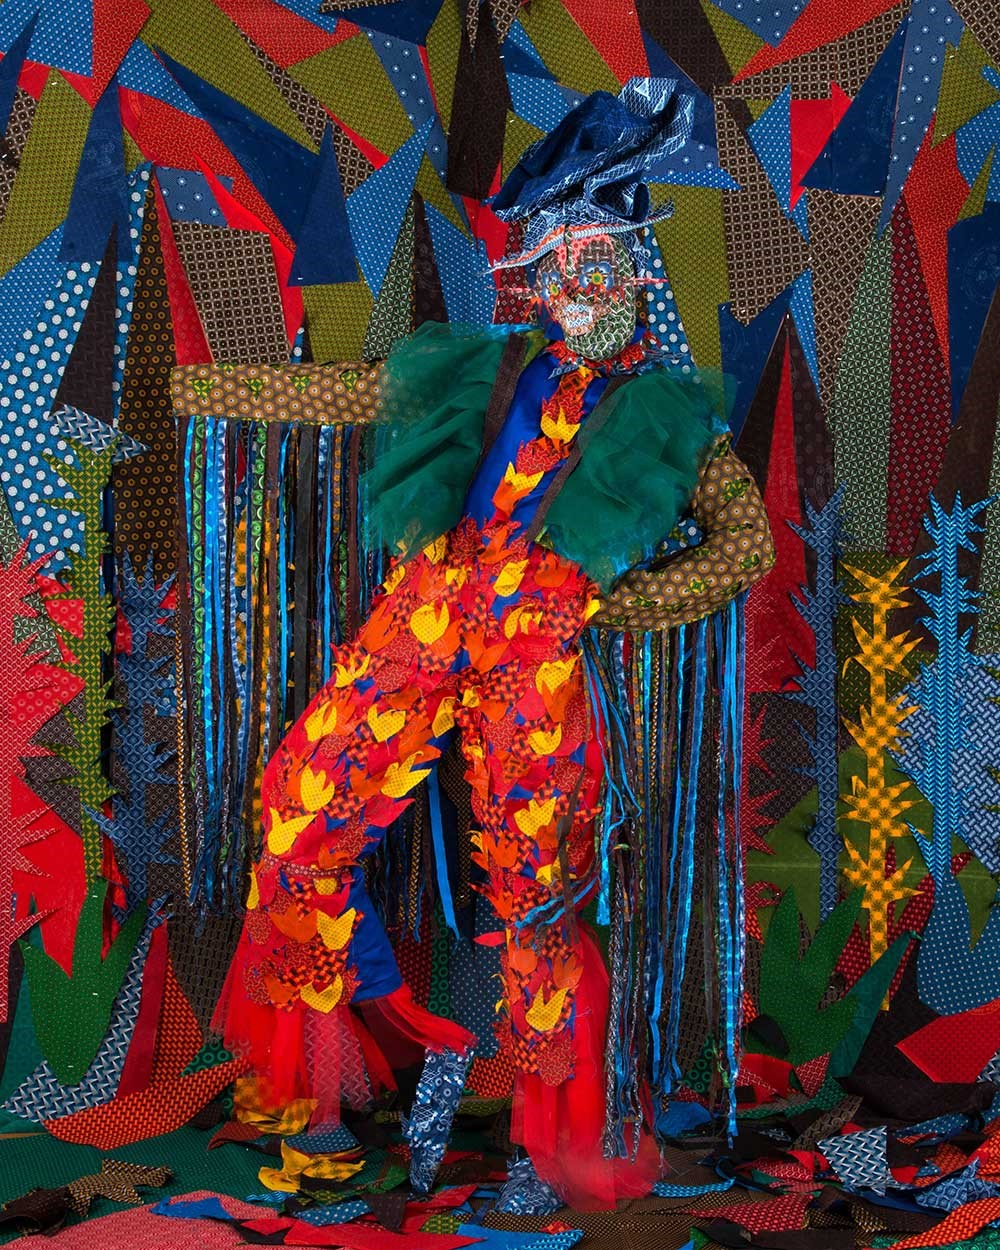 Talking #Africadia and Afropolitanism: An Interview with Artist Siwa Mgoboza |